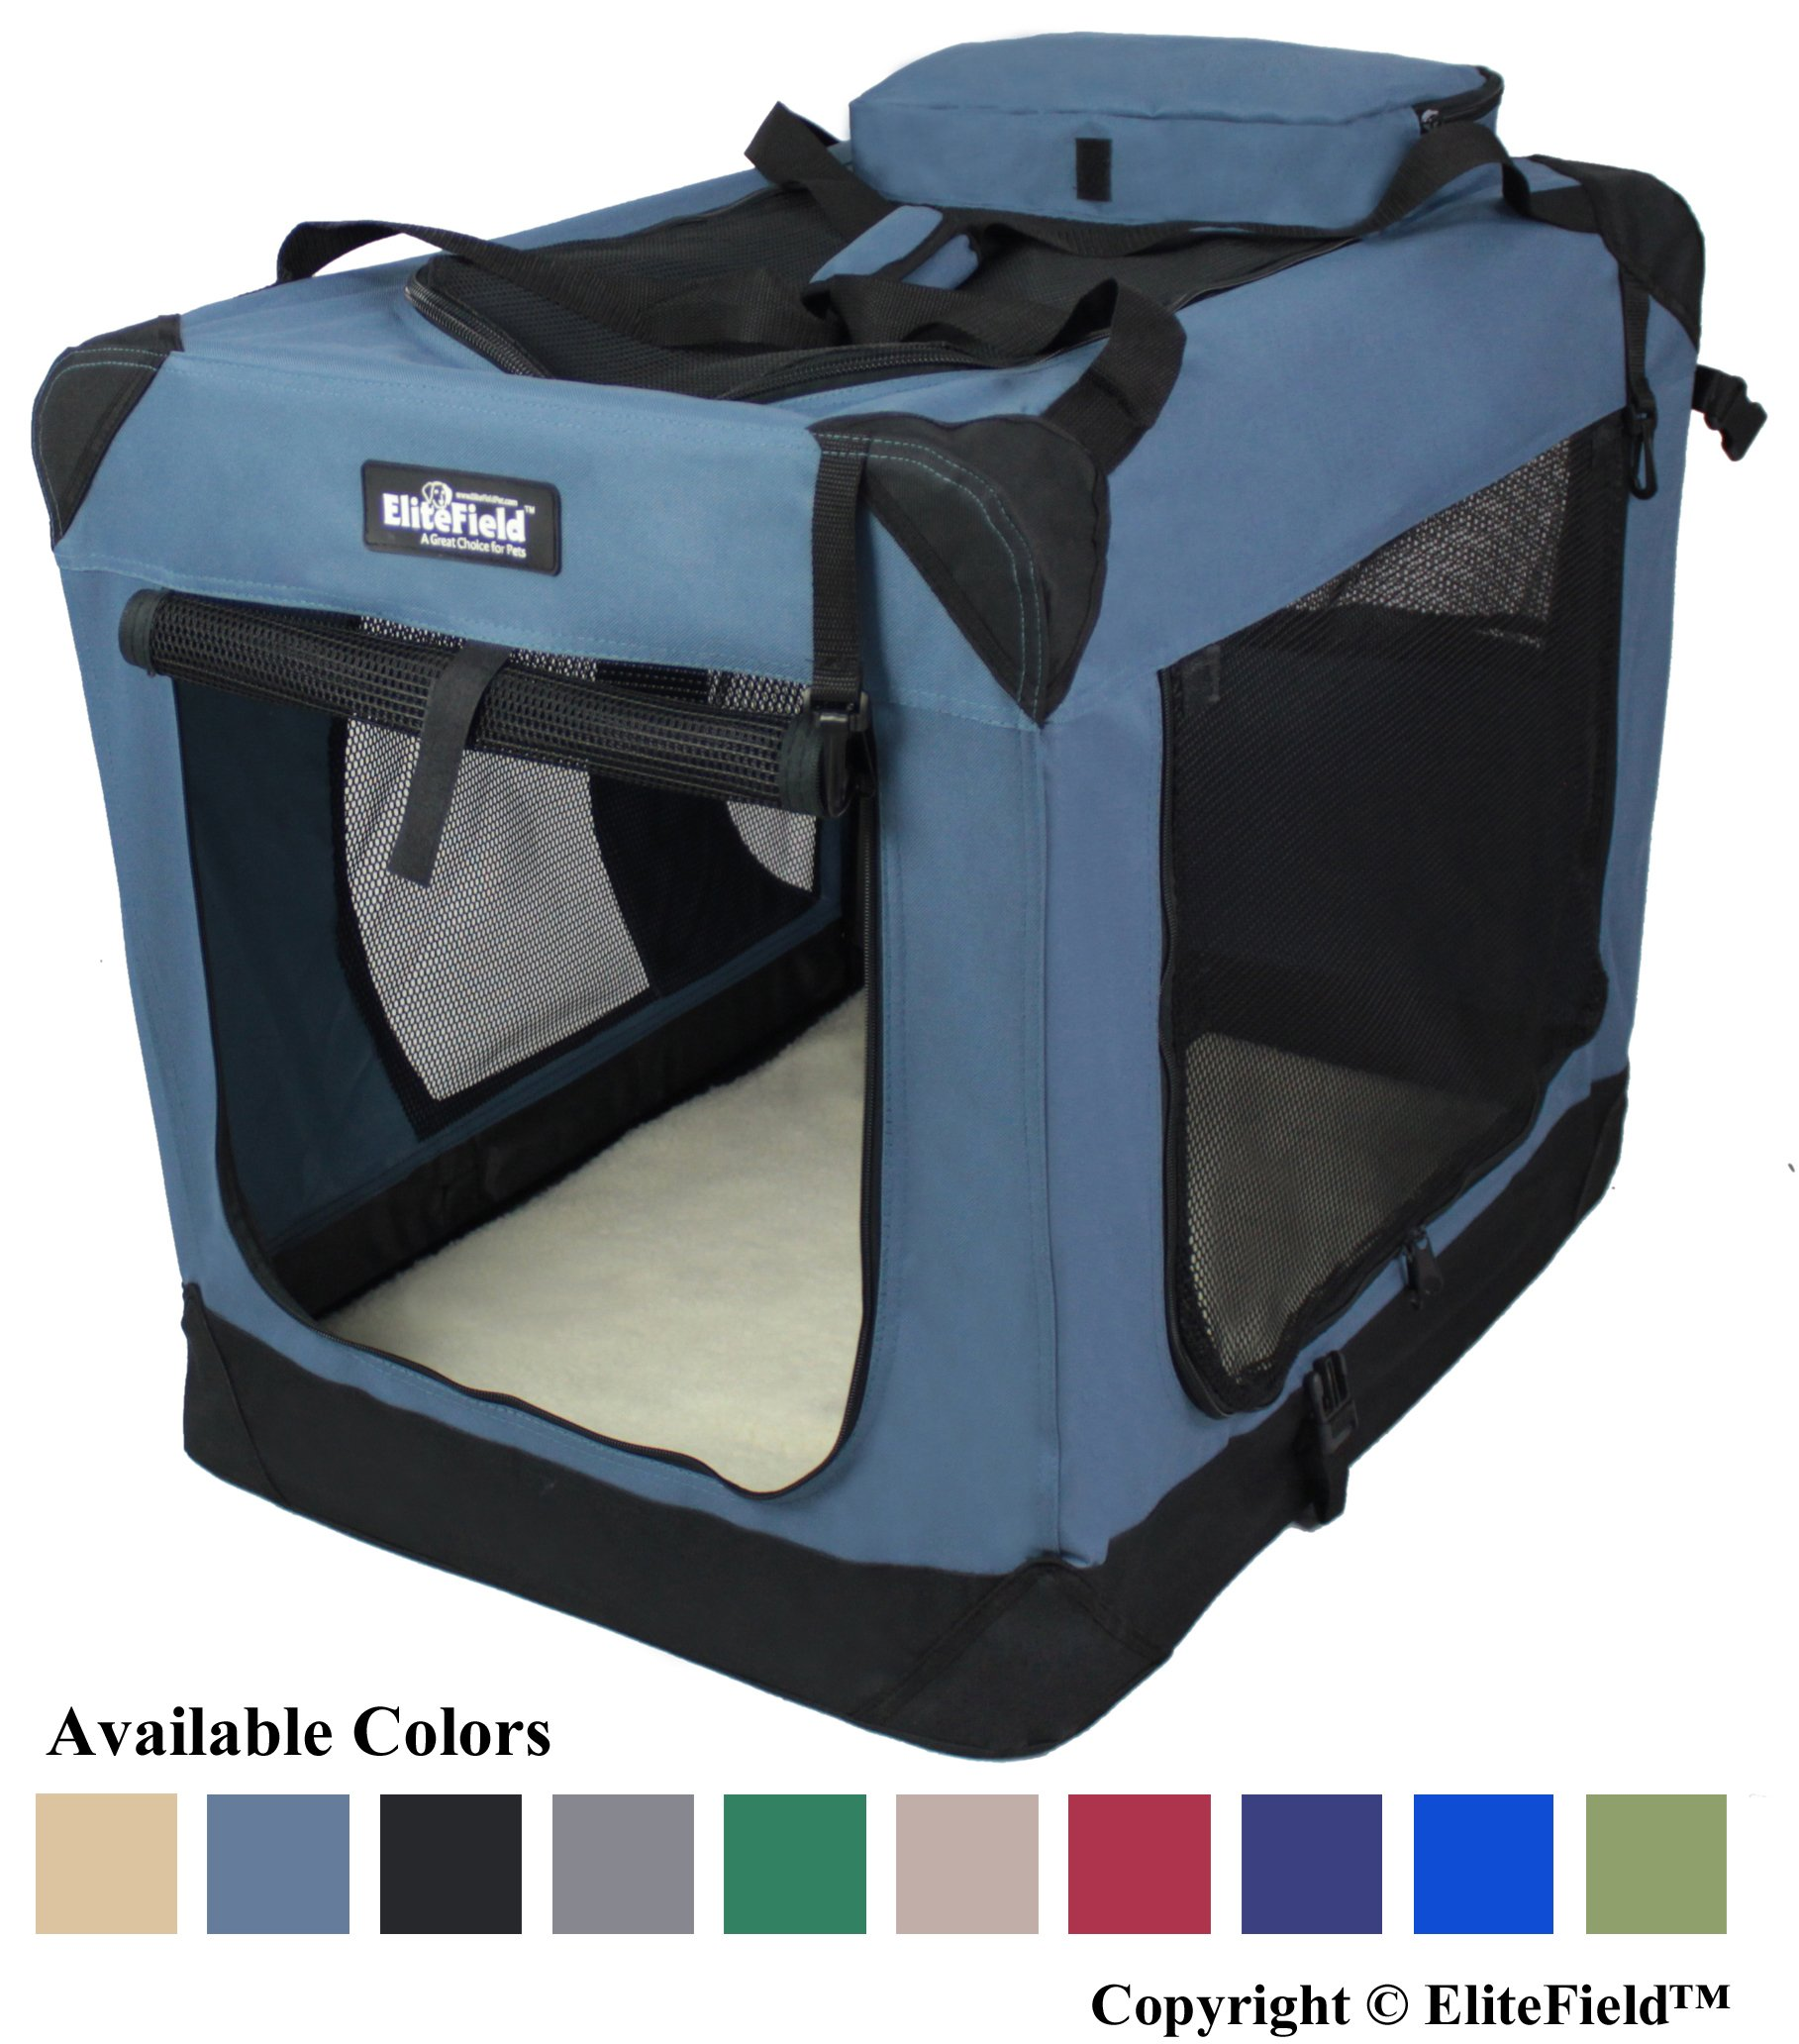 EliteField 3-Door Folding Soft Dog Crate, Indoor & Outdoor Pet Home, Multiple Sizes and Colors Available (42'' L x 28'' W x 32'' H, Blue Gray)